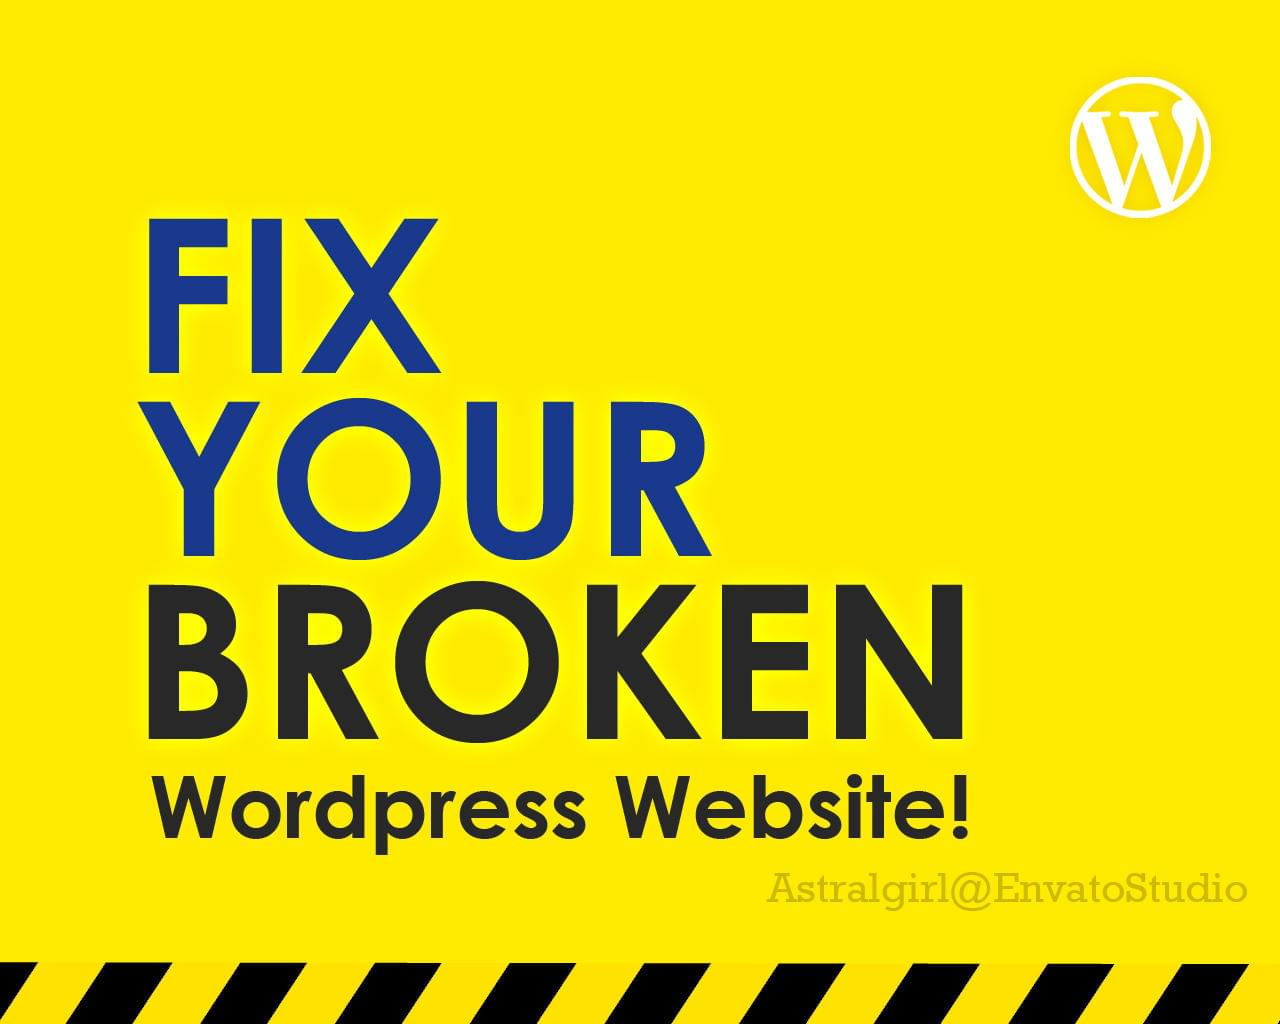 Express WordPress Bug Fix  by astralgirl - 116863